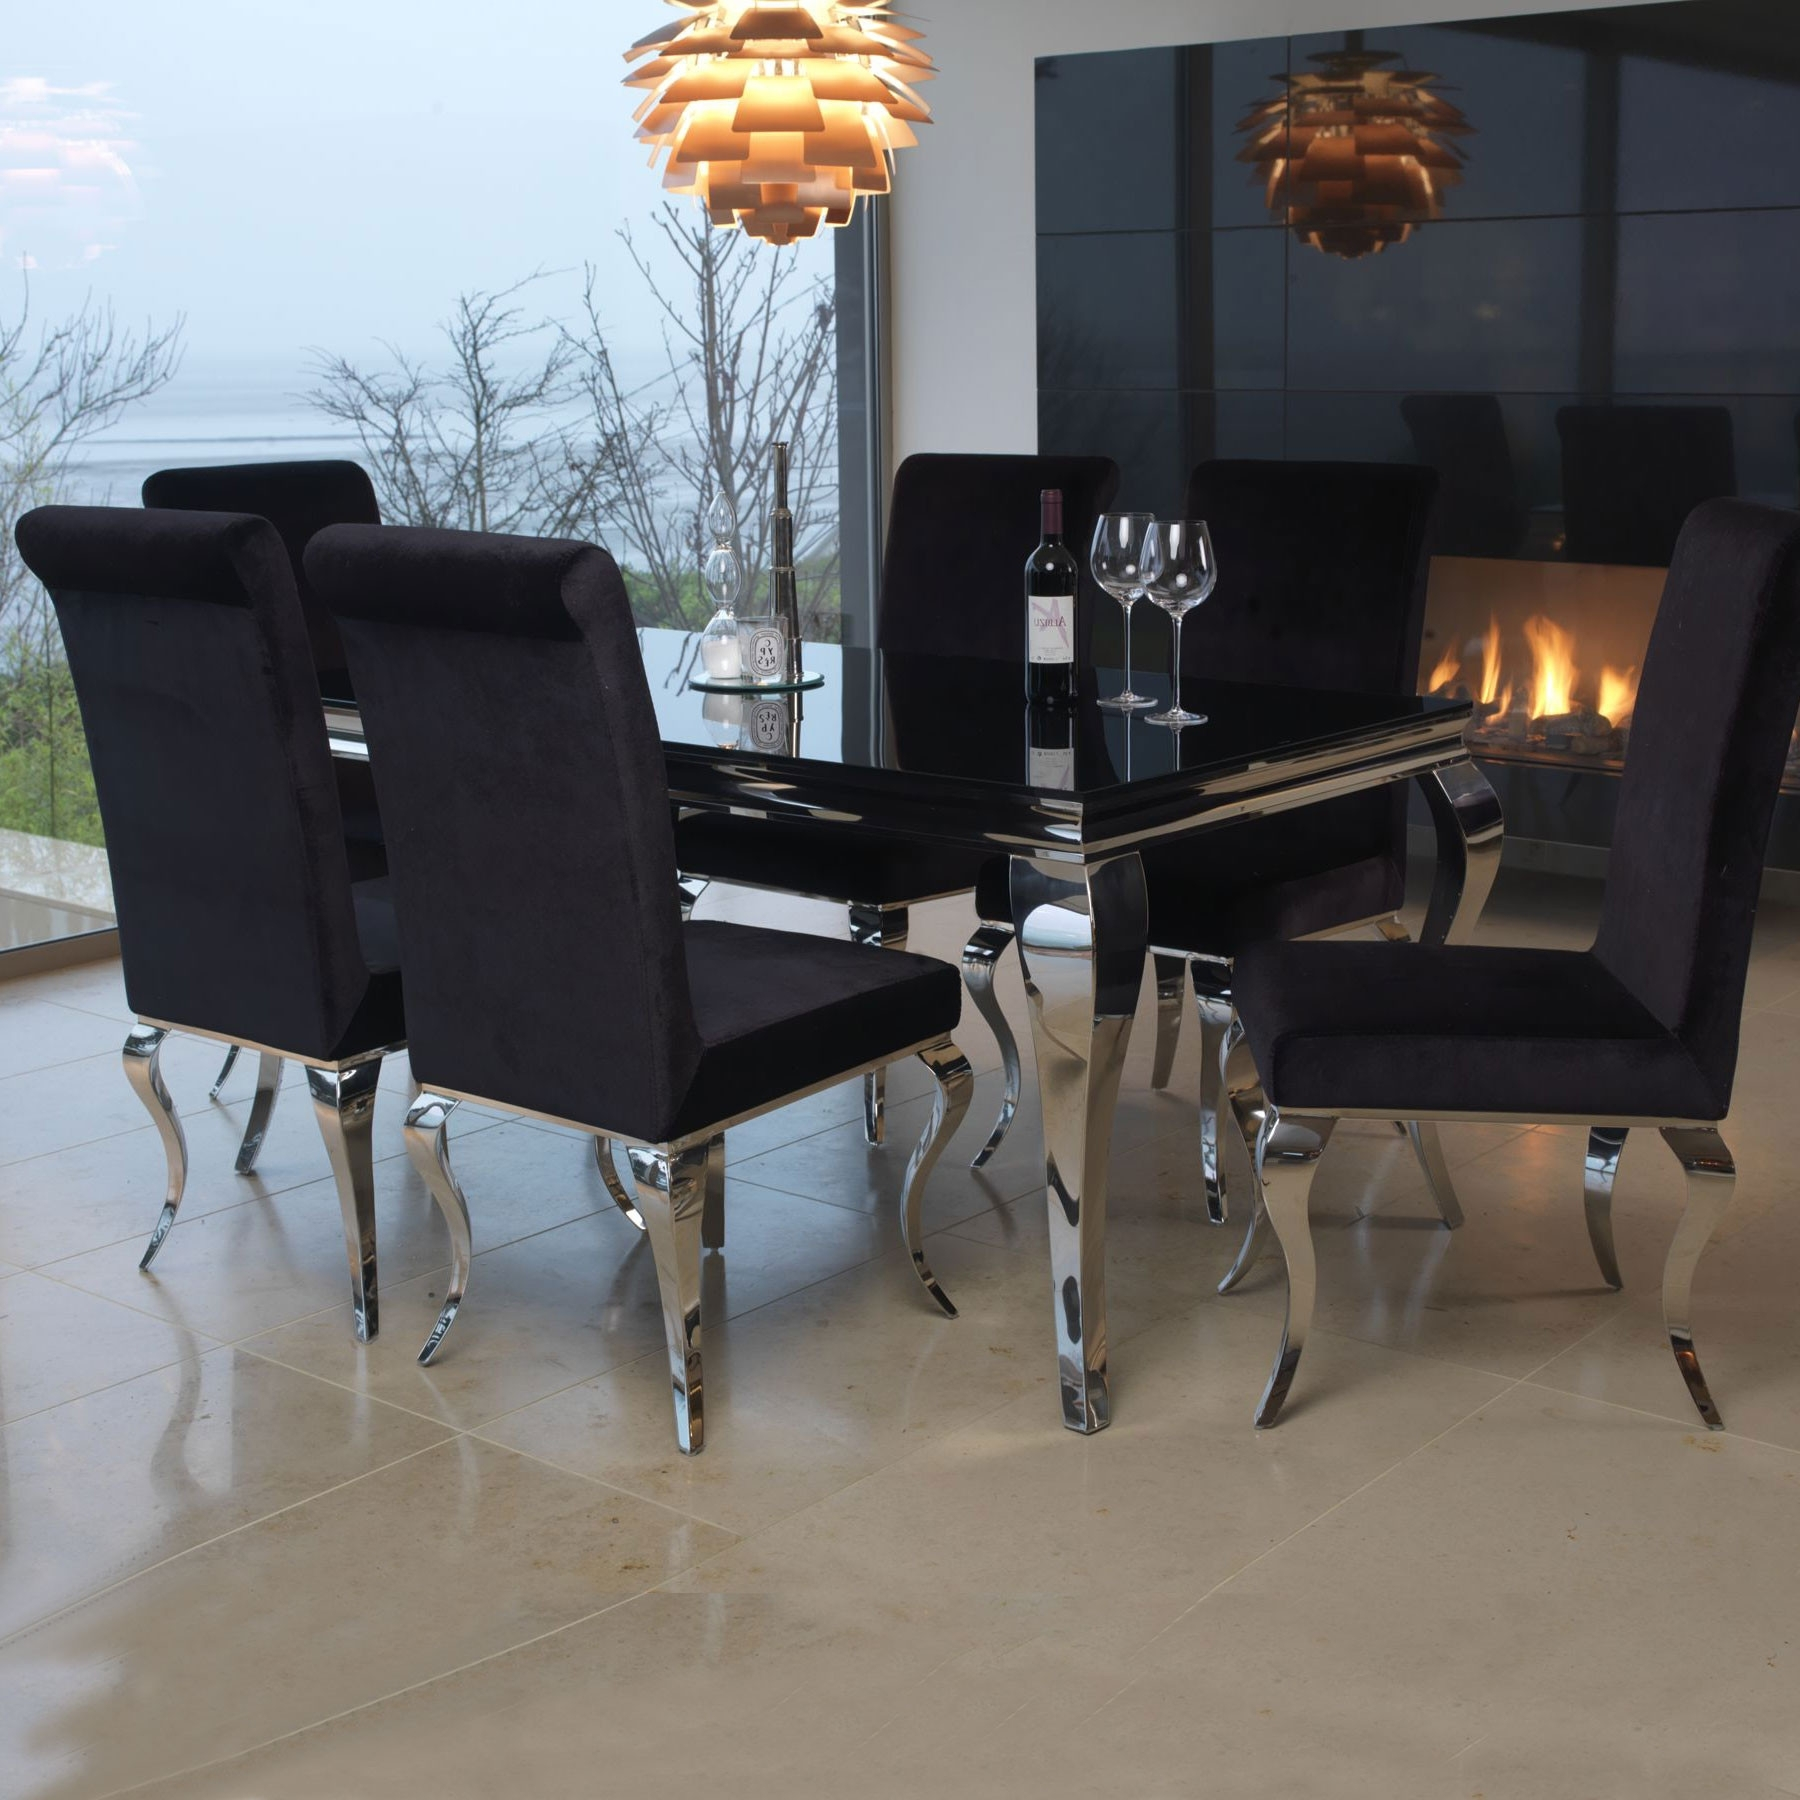 Louis Black Glass 200Cm Dining Table & 6 Chairs Within Most Recently Released Dining Tables Black Glass (View 17 of 25)